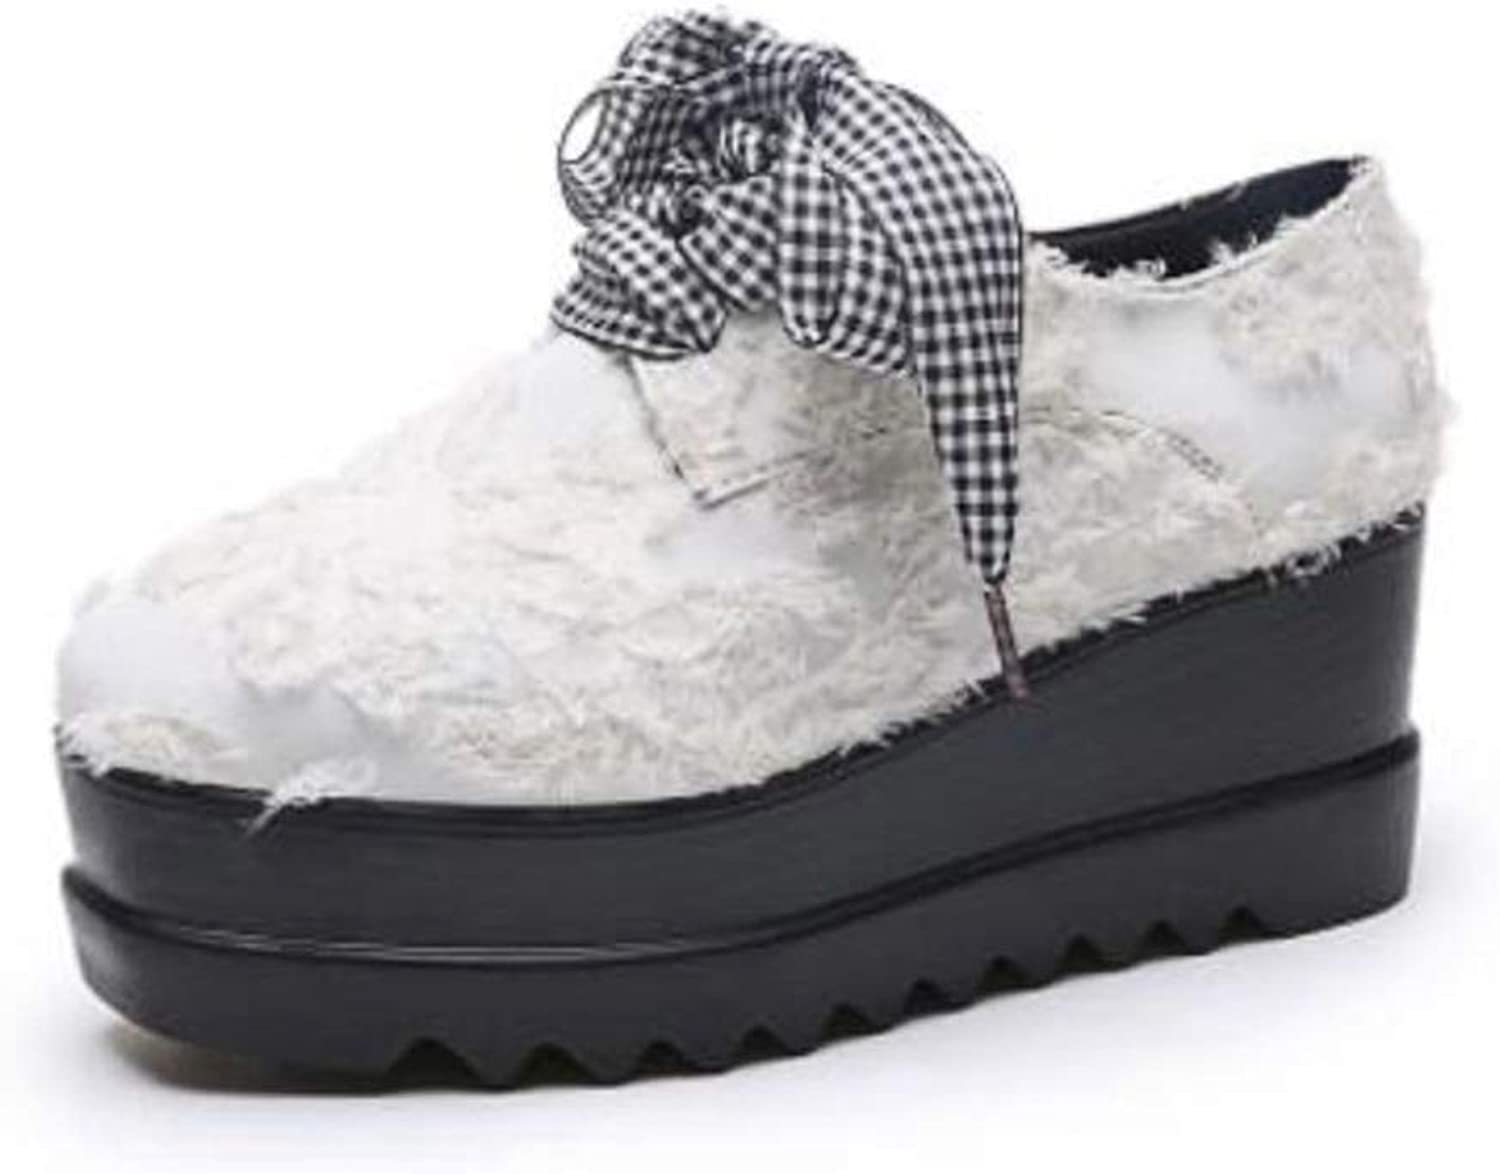 U-MAC Women Thick Soled Flats Round Toe Platform Wedge Sneakers Hidden Heels Lace-up Casual Elevator shoes